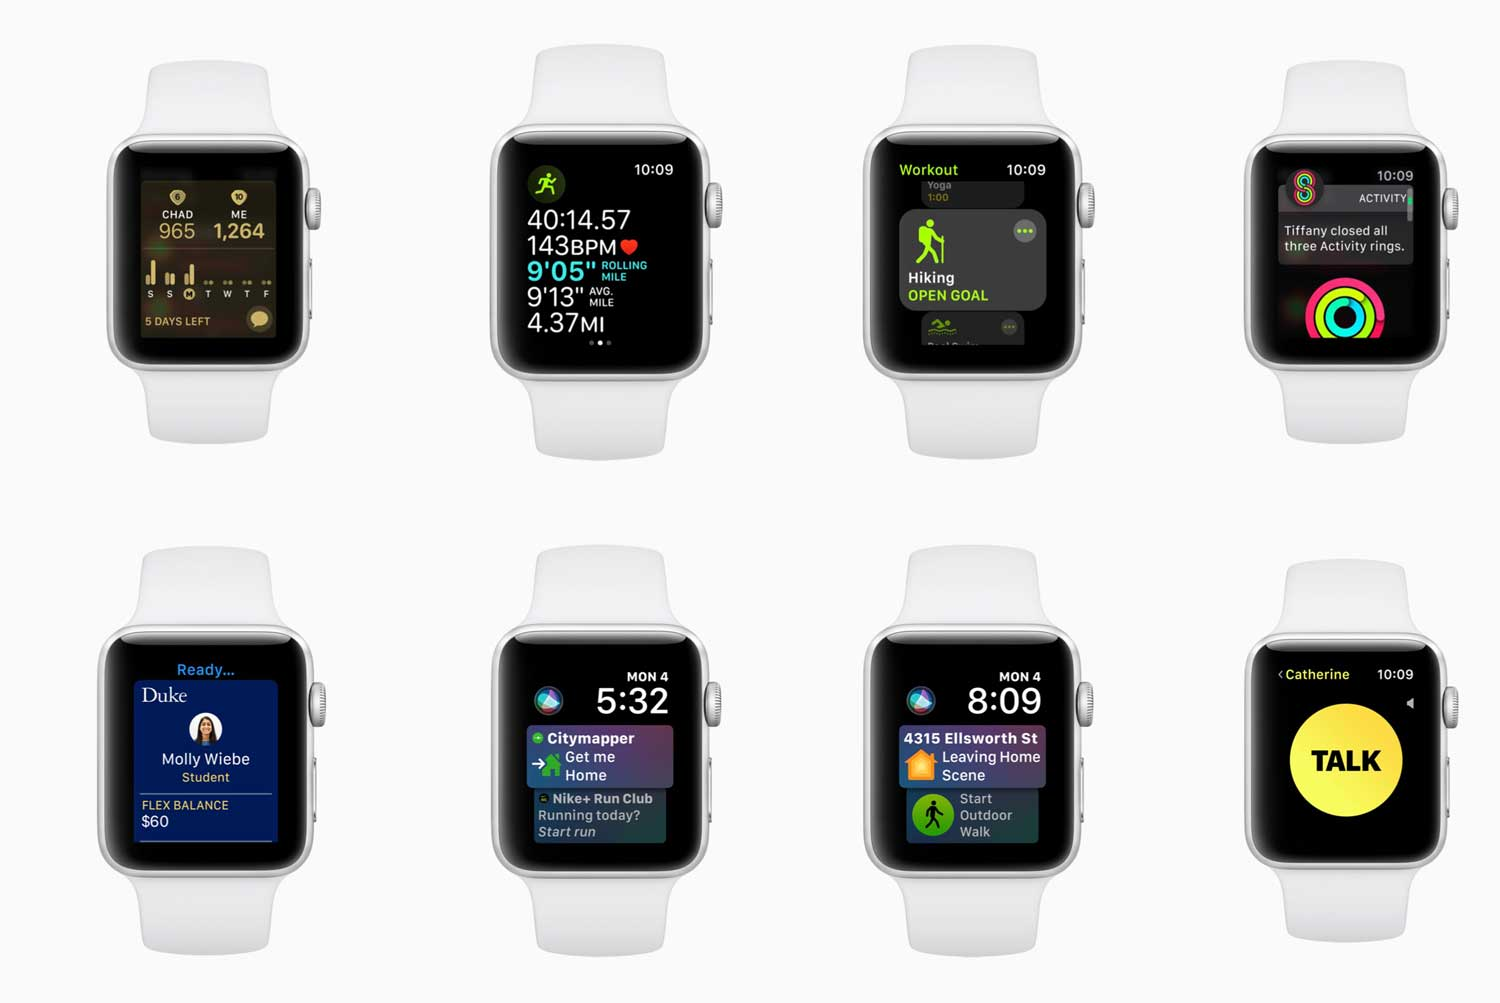 watchOS 5 features for Apple Watch